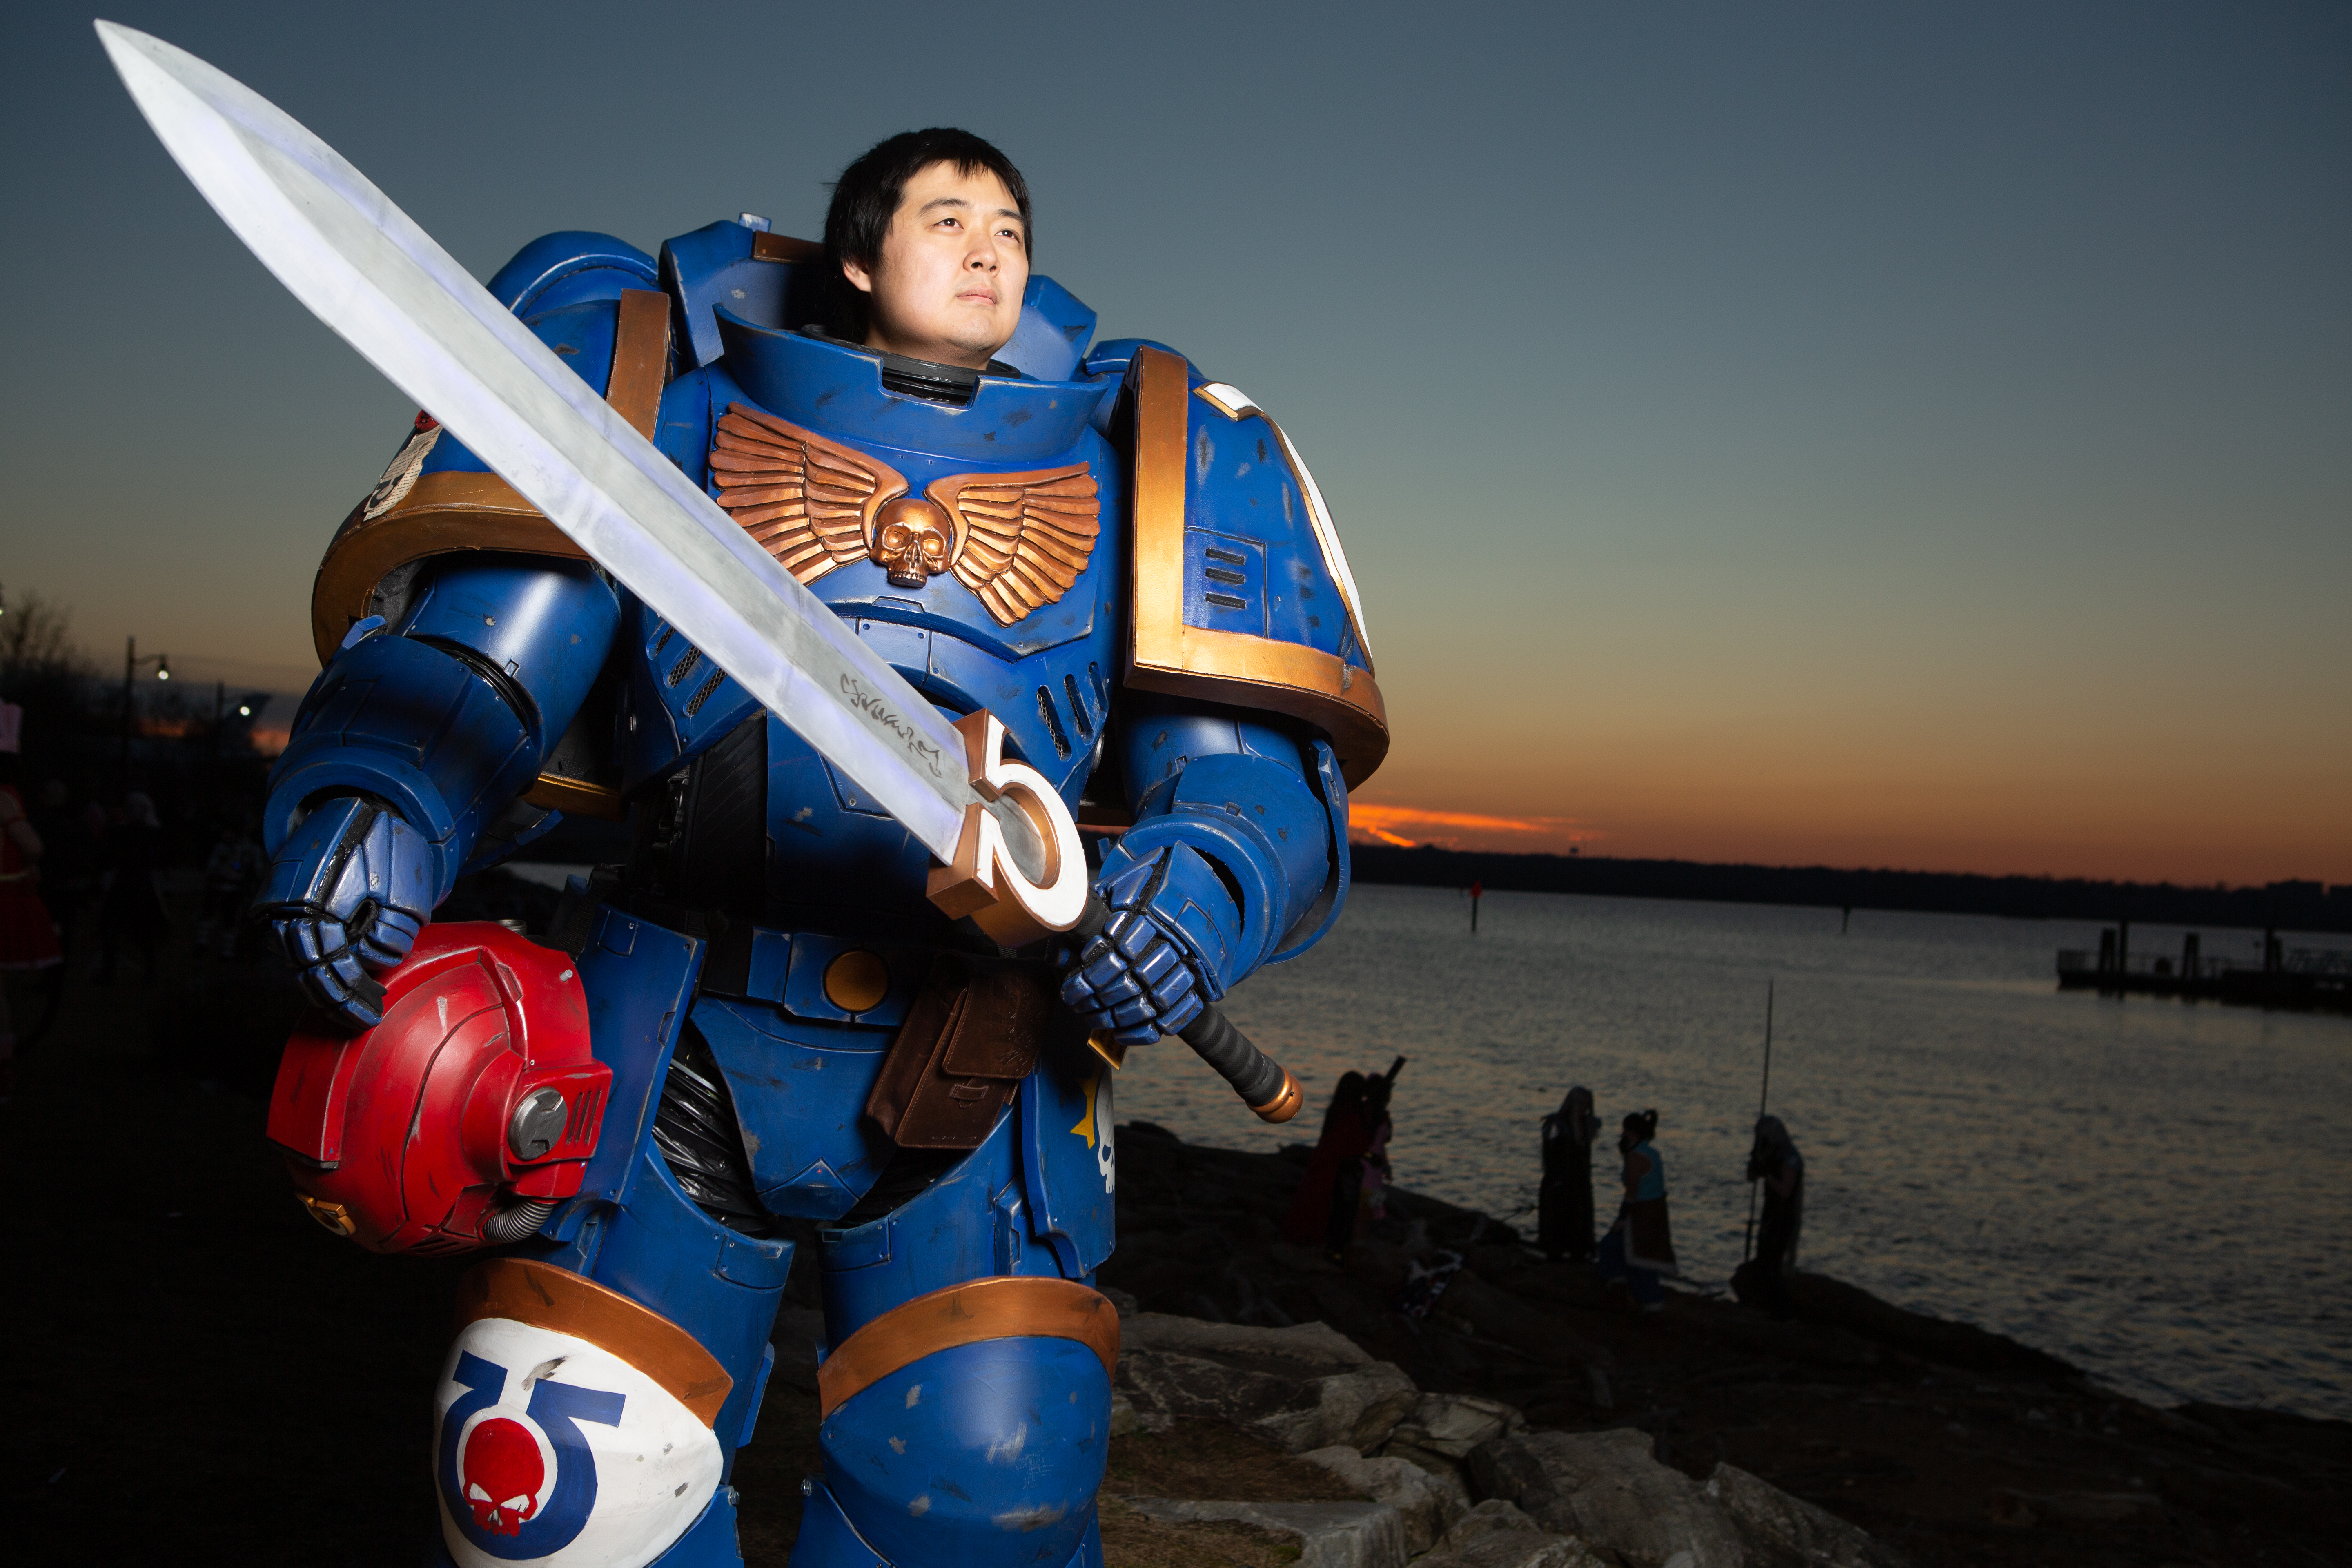 Check out this Primaris Space Marine cosplay | PC Gamer